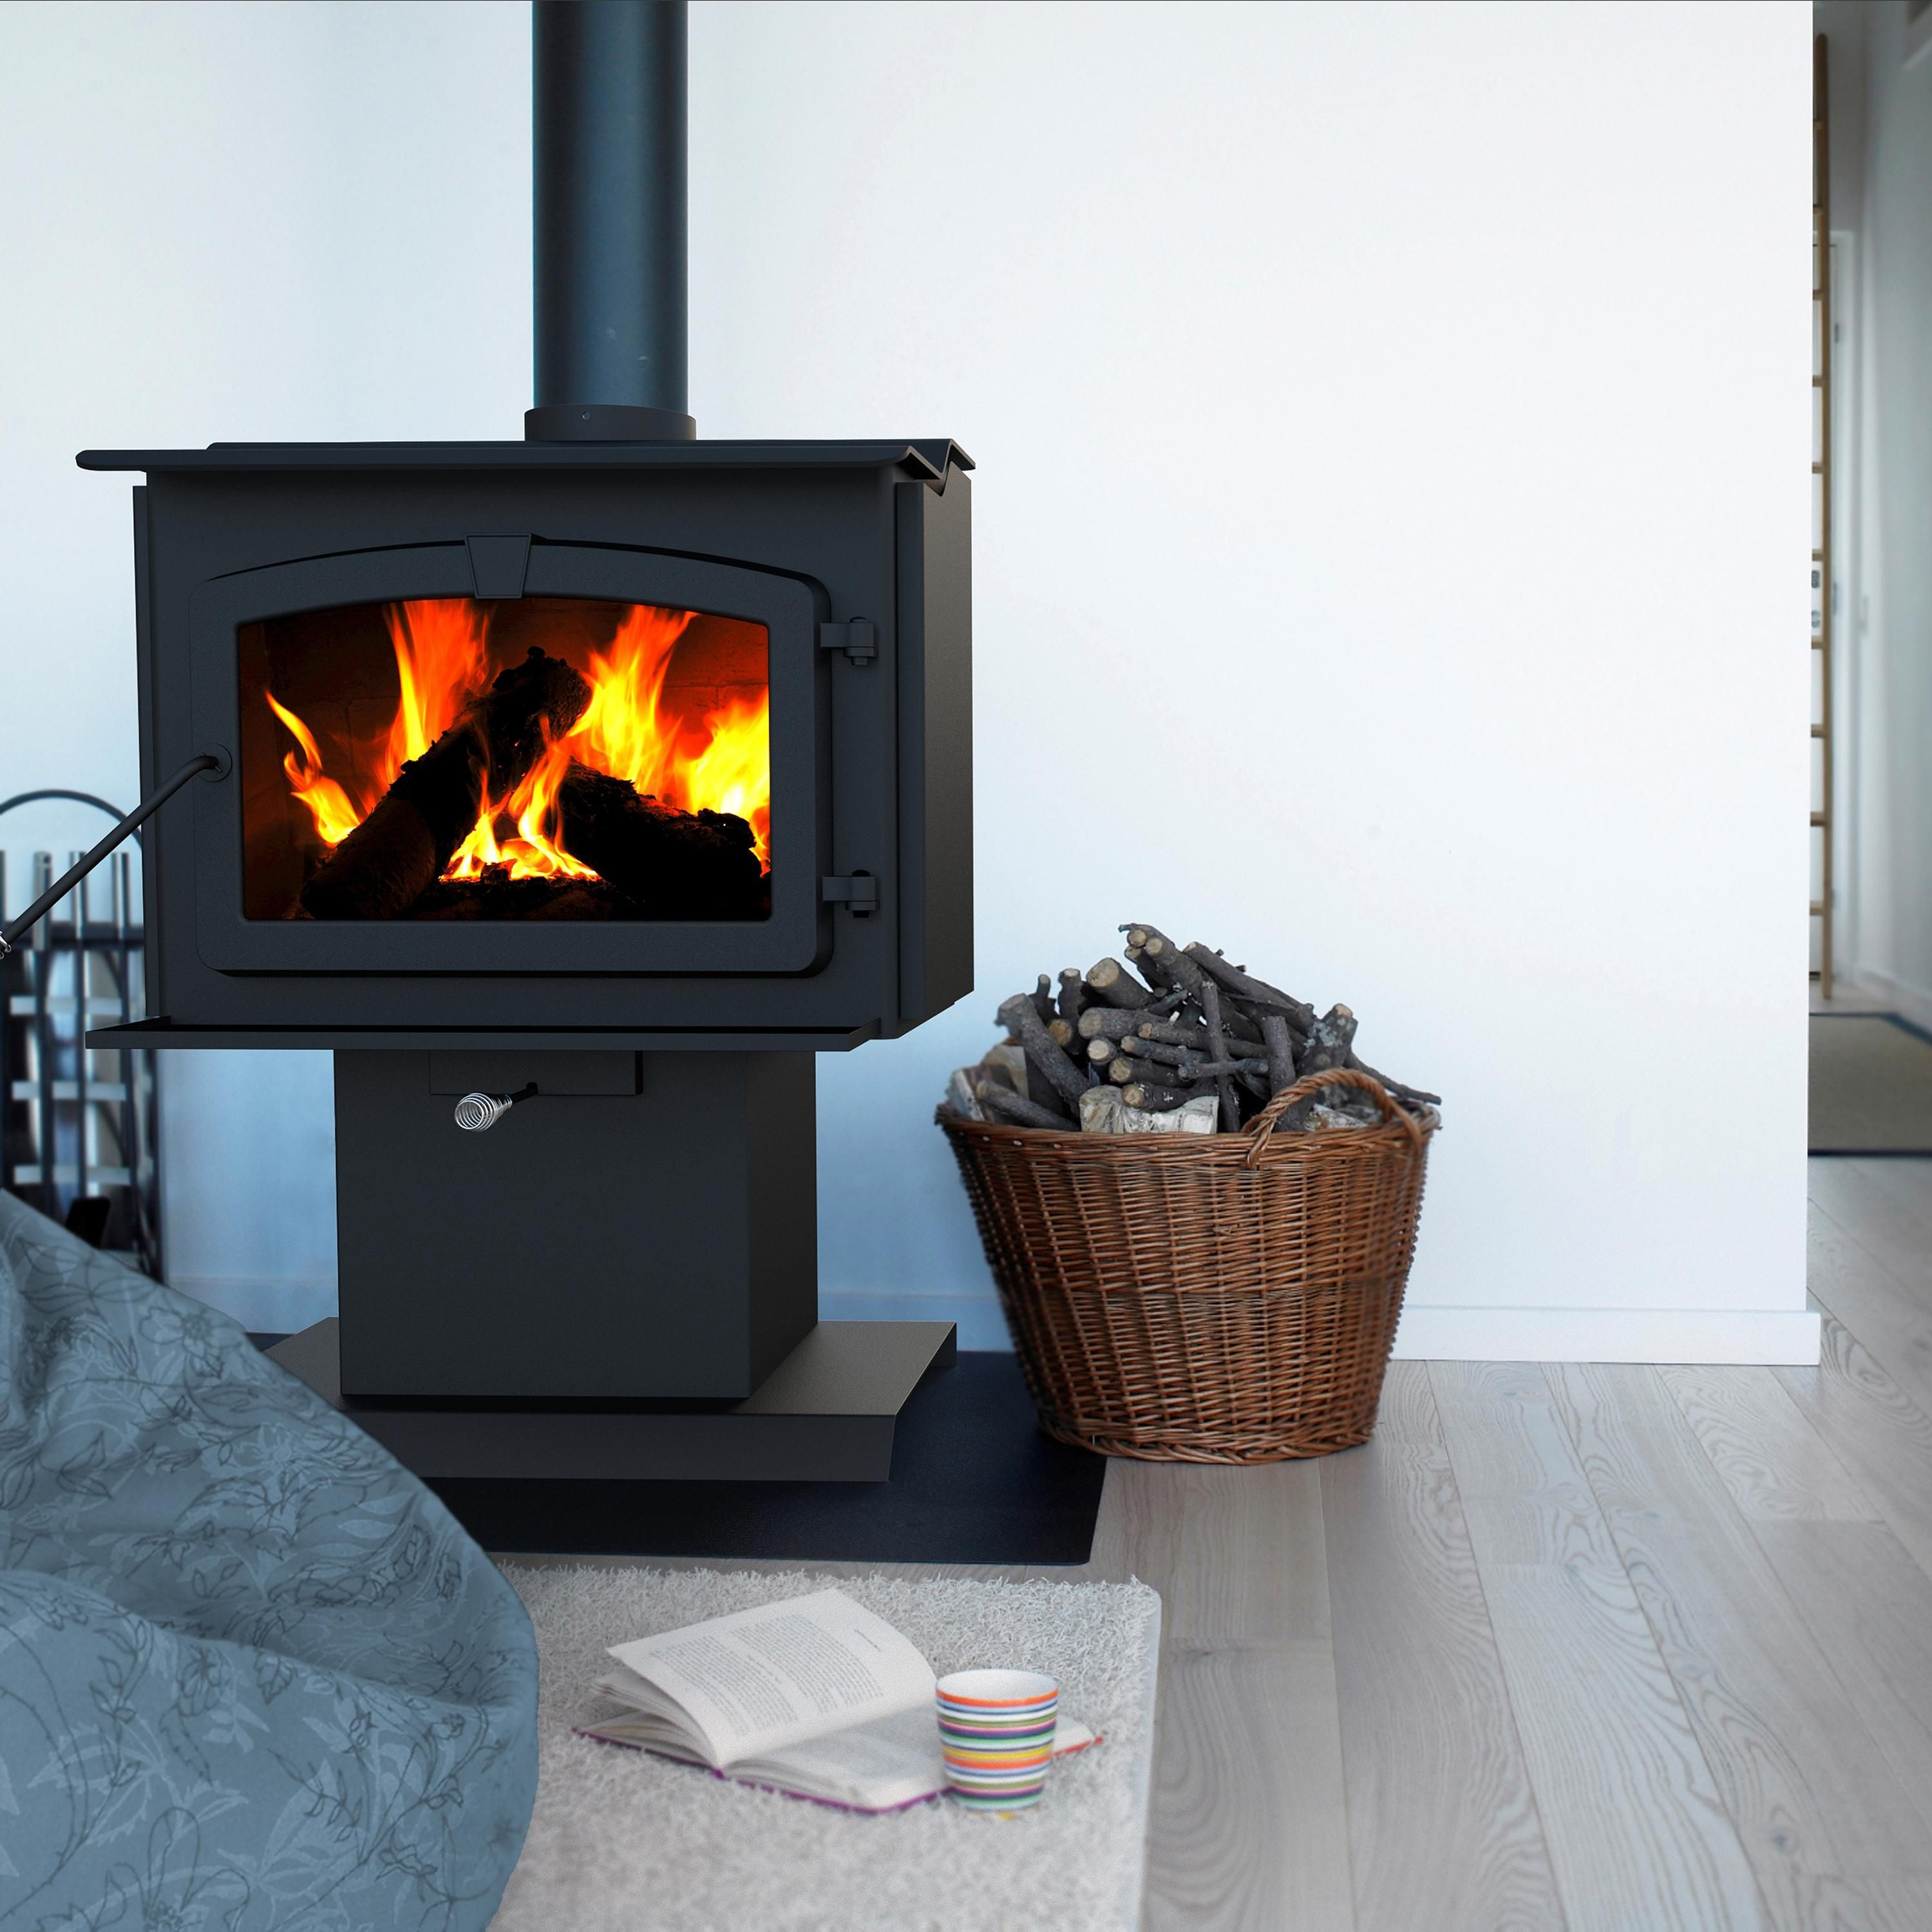 decor wood the depot and fireplace stoves p burning small stove categories en fireplaces home canada